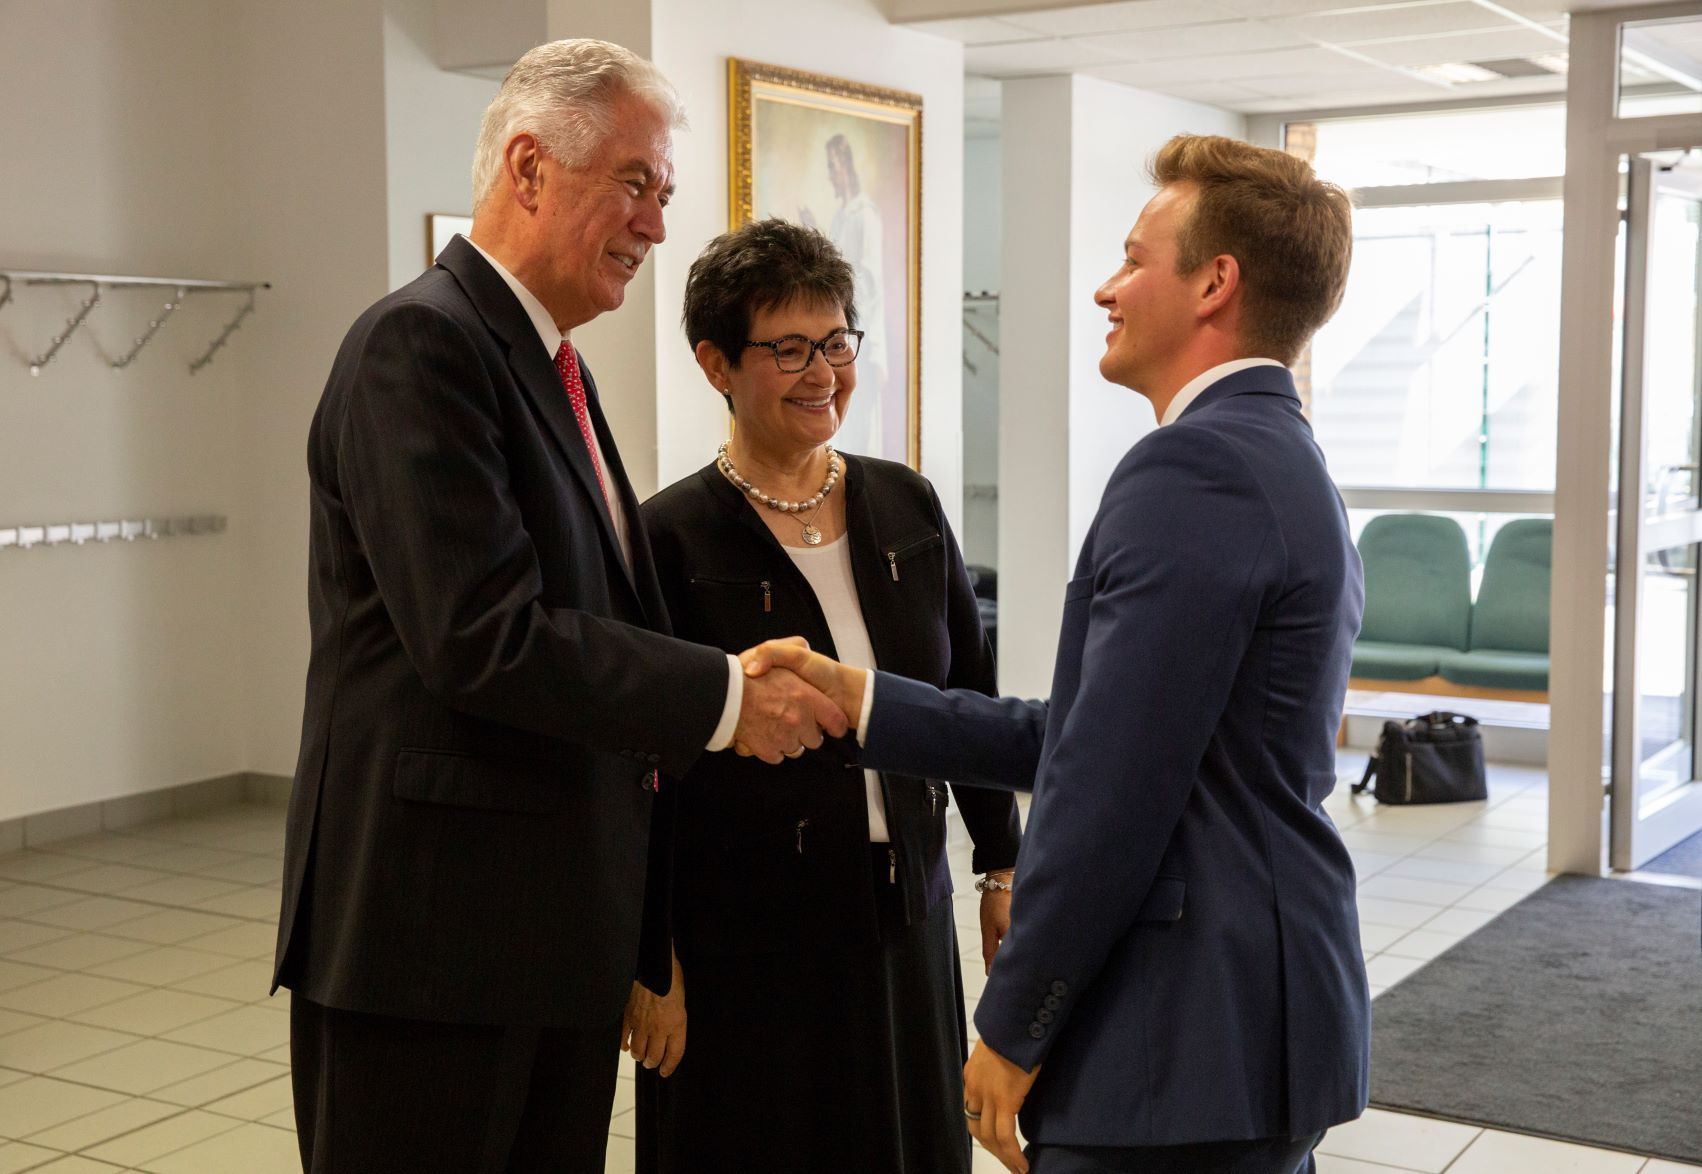 Elder Dieter F. Uchtdorf, left, of the Quorum of the Twelve Apostles, and his wife, Sister Harriet Uchtdorf, greet an elder in conjunction with their participation in a Germany Frankfurt Mission conference in Frankfurt on Sept. 11, 2018.